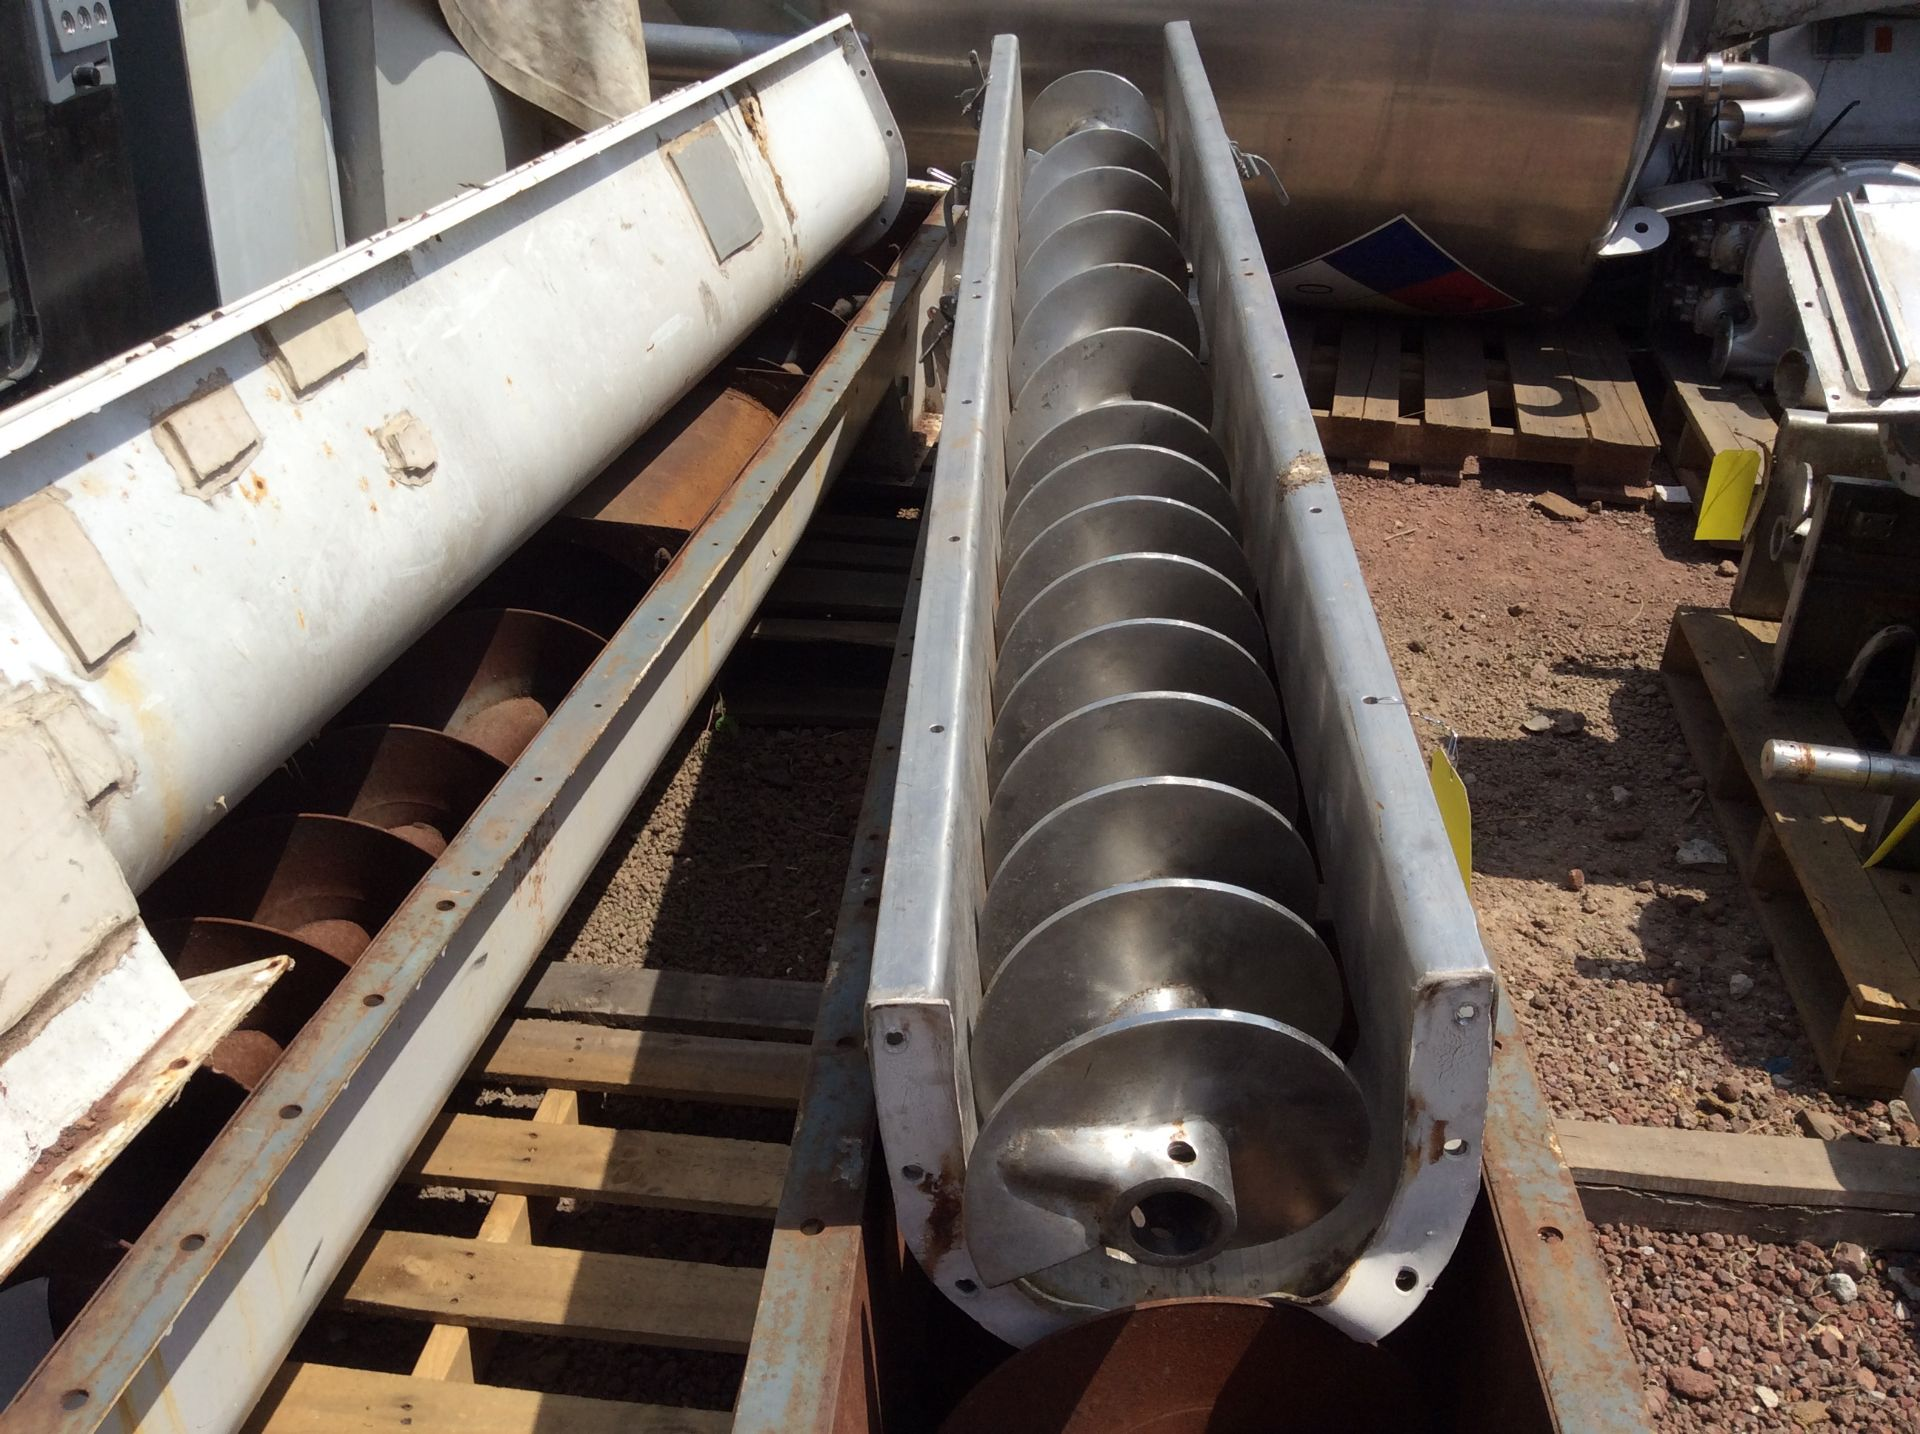 4 helical conveyors, includes 1 geared motor. Please inspect - Image 7 of 11